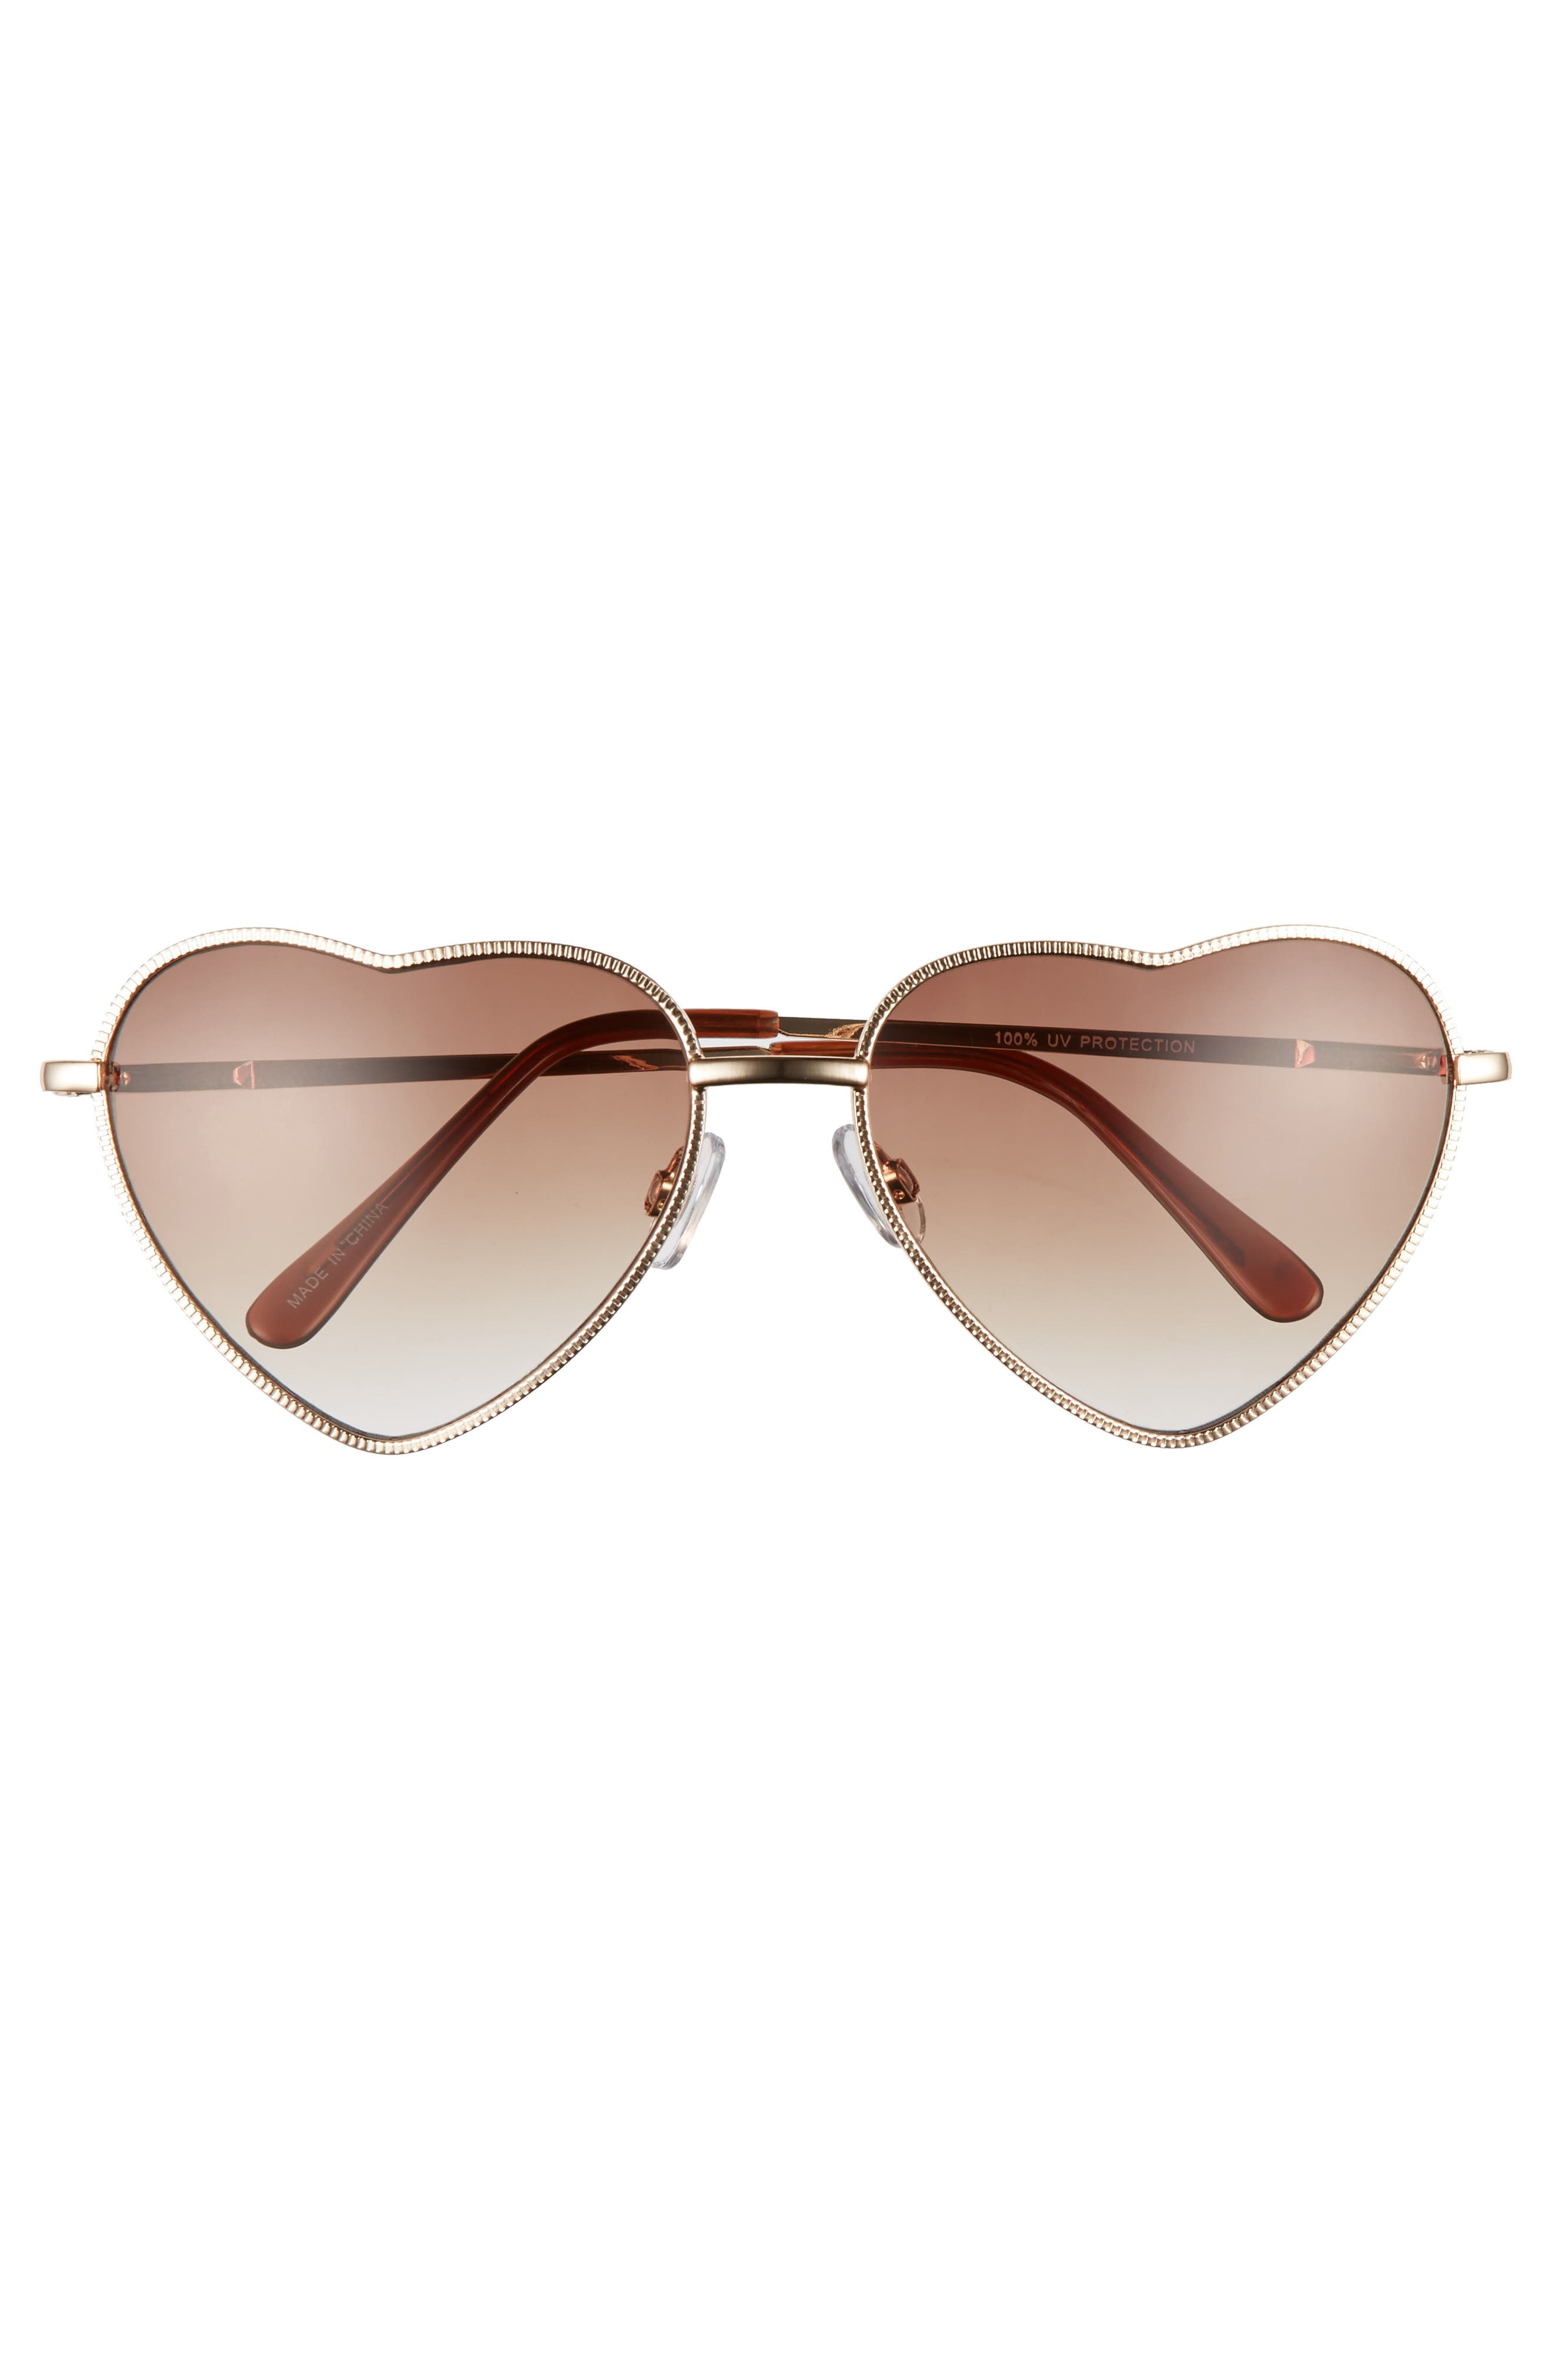 Heart Shaped 58mm Sunglasses,                             Alternate thumbnail 4, color,                             GOLD/ BROWN